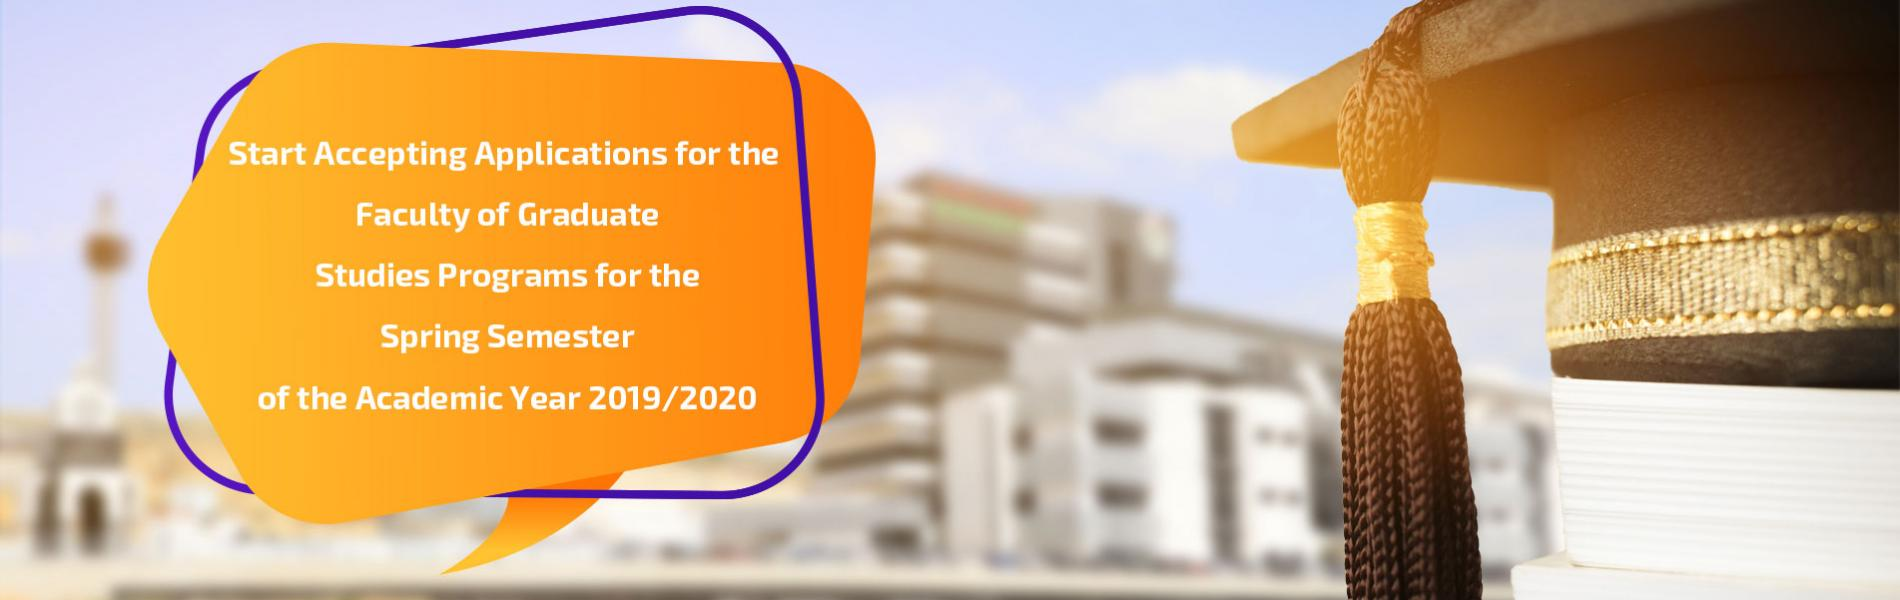 Announcement: Start Accepting Applications for the Faculty of Graduate Studies Programs for the Spring Semester of the Academic Year 2019/2020